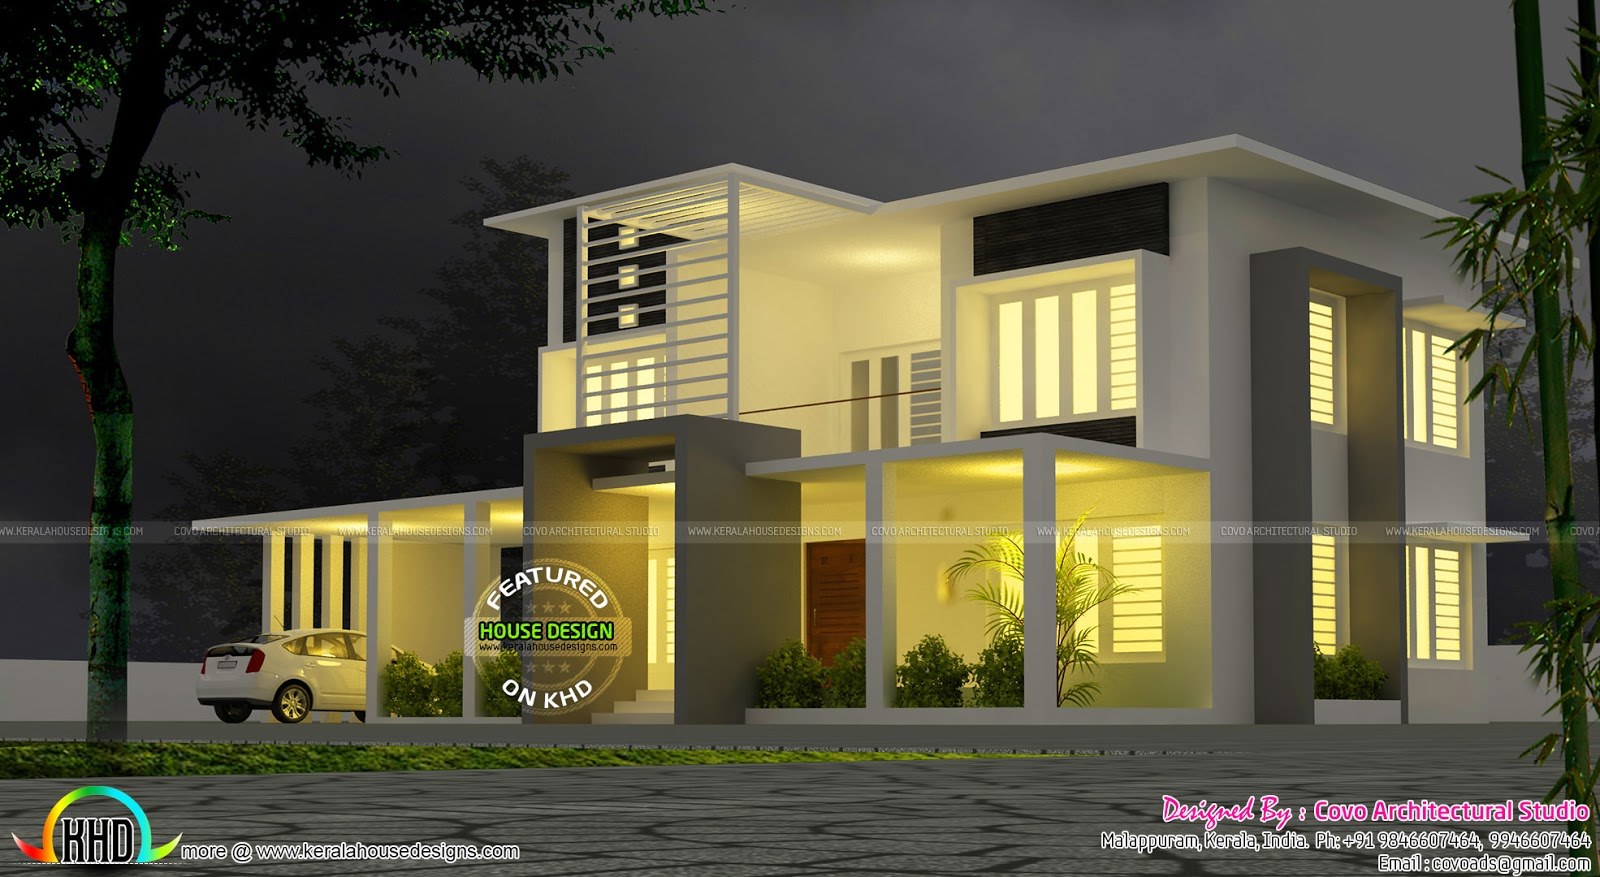 5 bedroom modern contemporary villa kerala home design and floor plans - Contemporary house designs ...